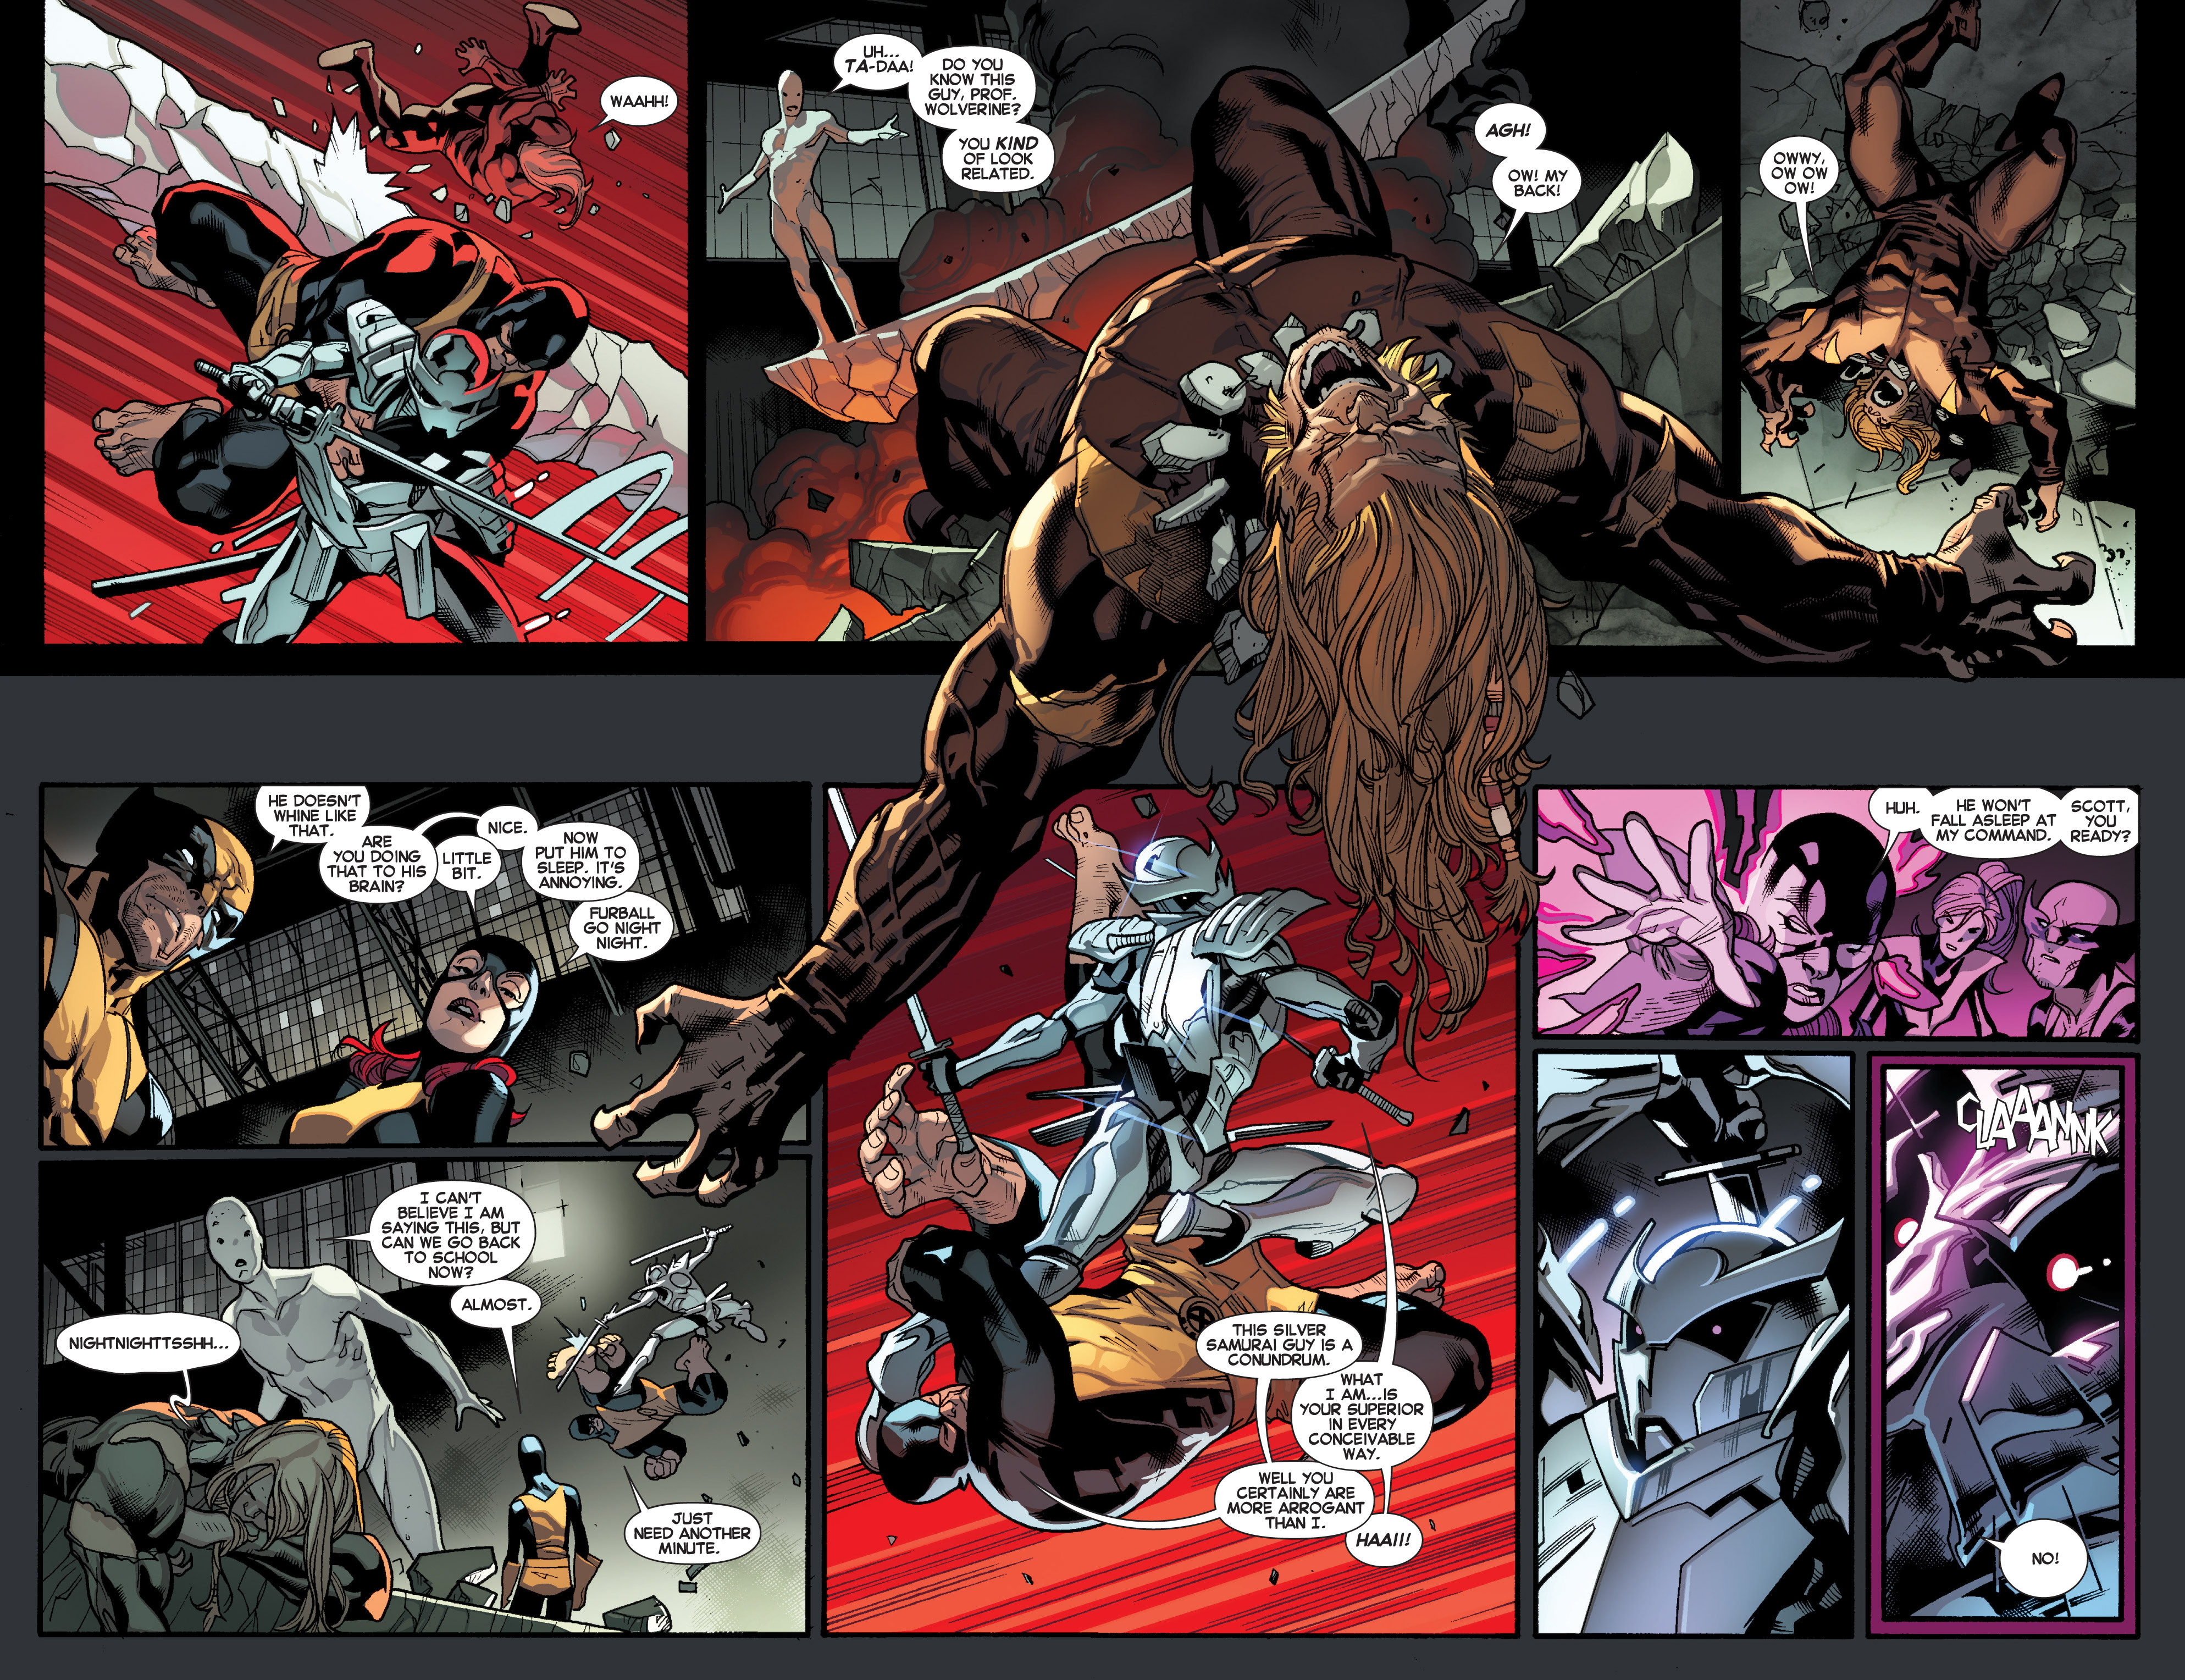 Read online All-New X-Men (2013) comic -  Issue # _Special - Out Of Their Depth - 79